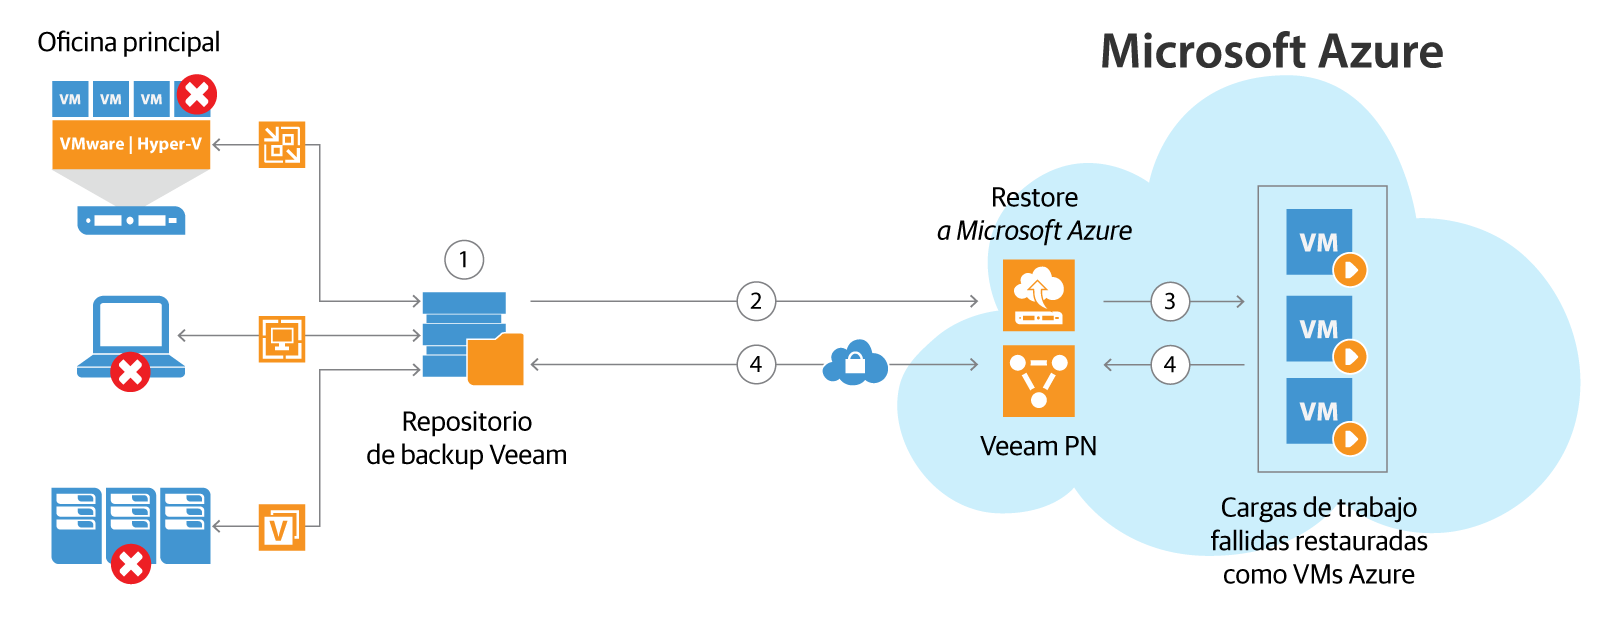 veeam_pn_direct_restore_to_azure_es.png